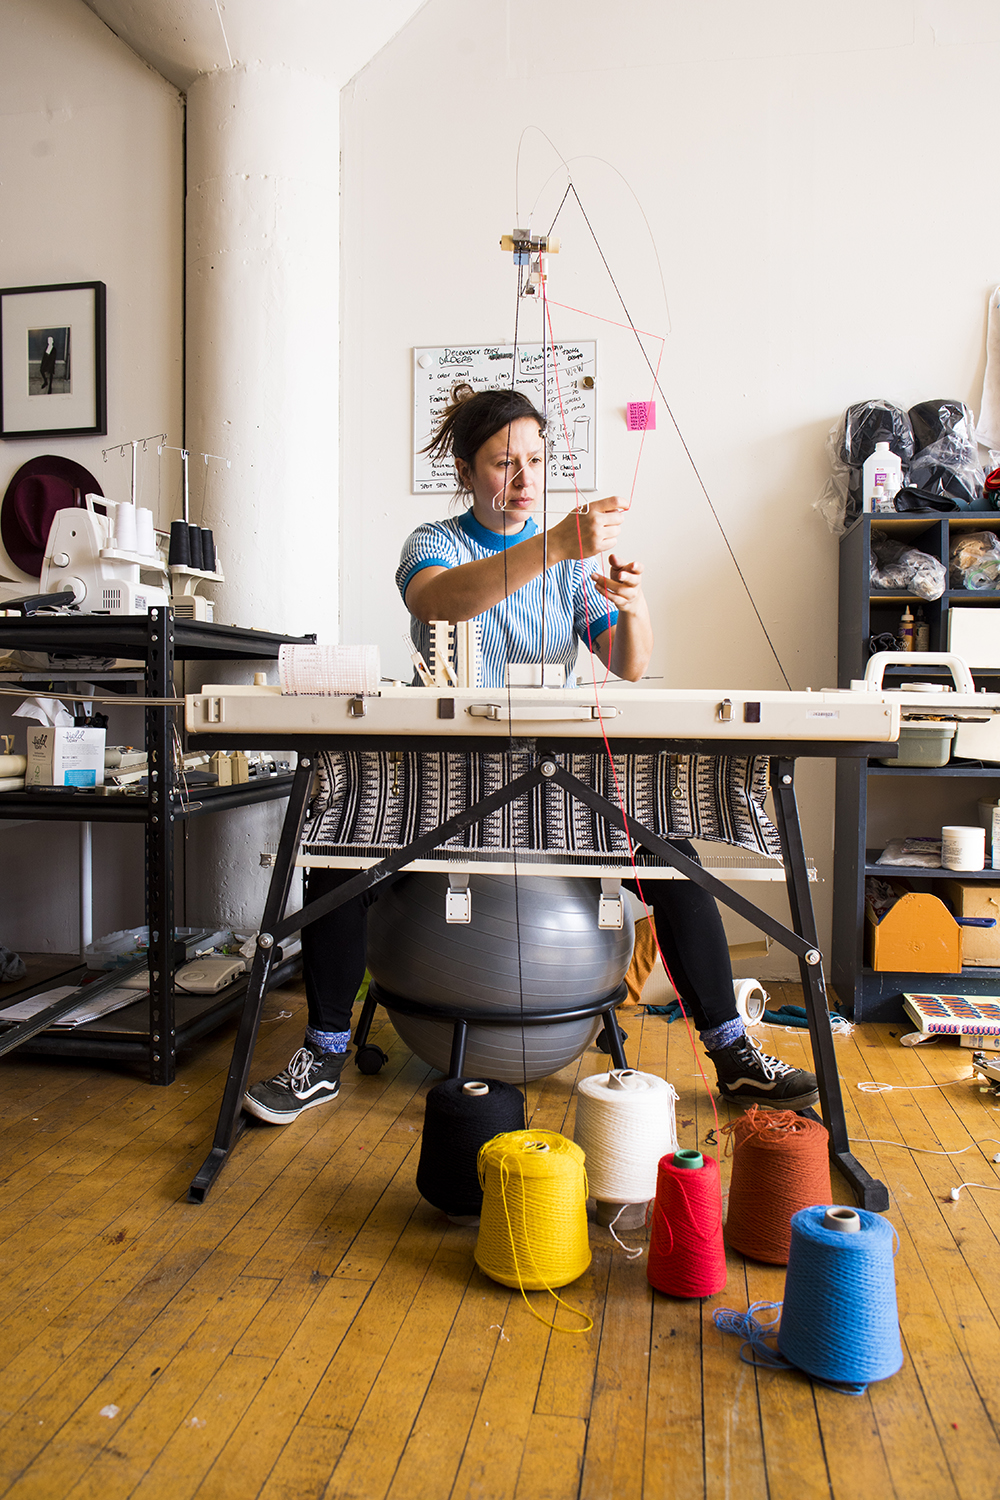 Thompson threading her knitting machine // Photo by Tj Turner